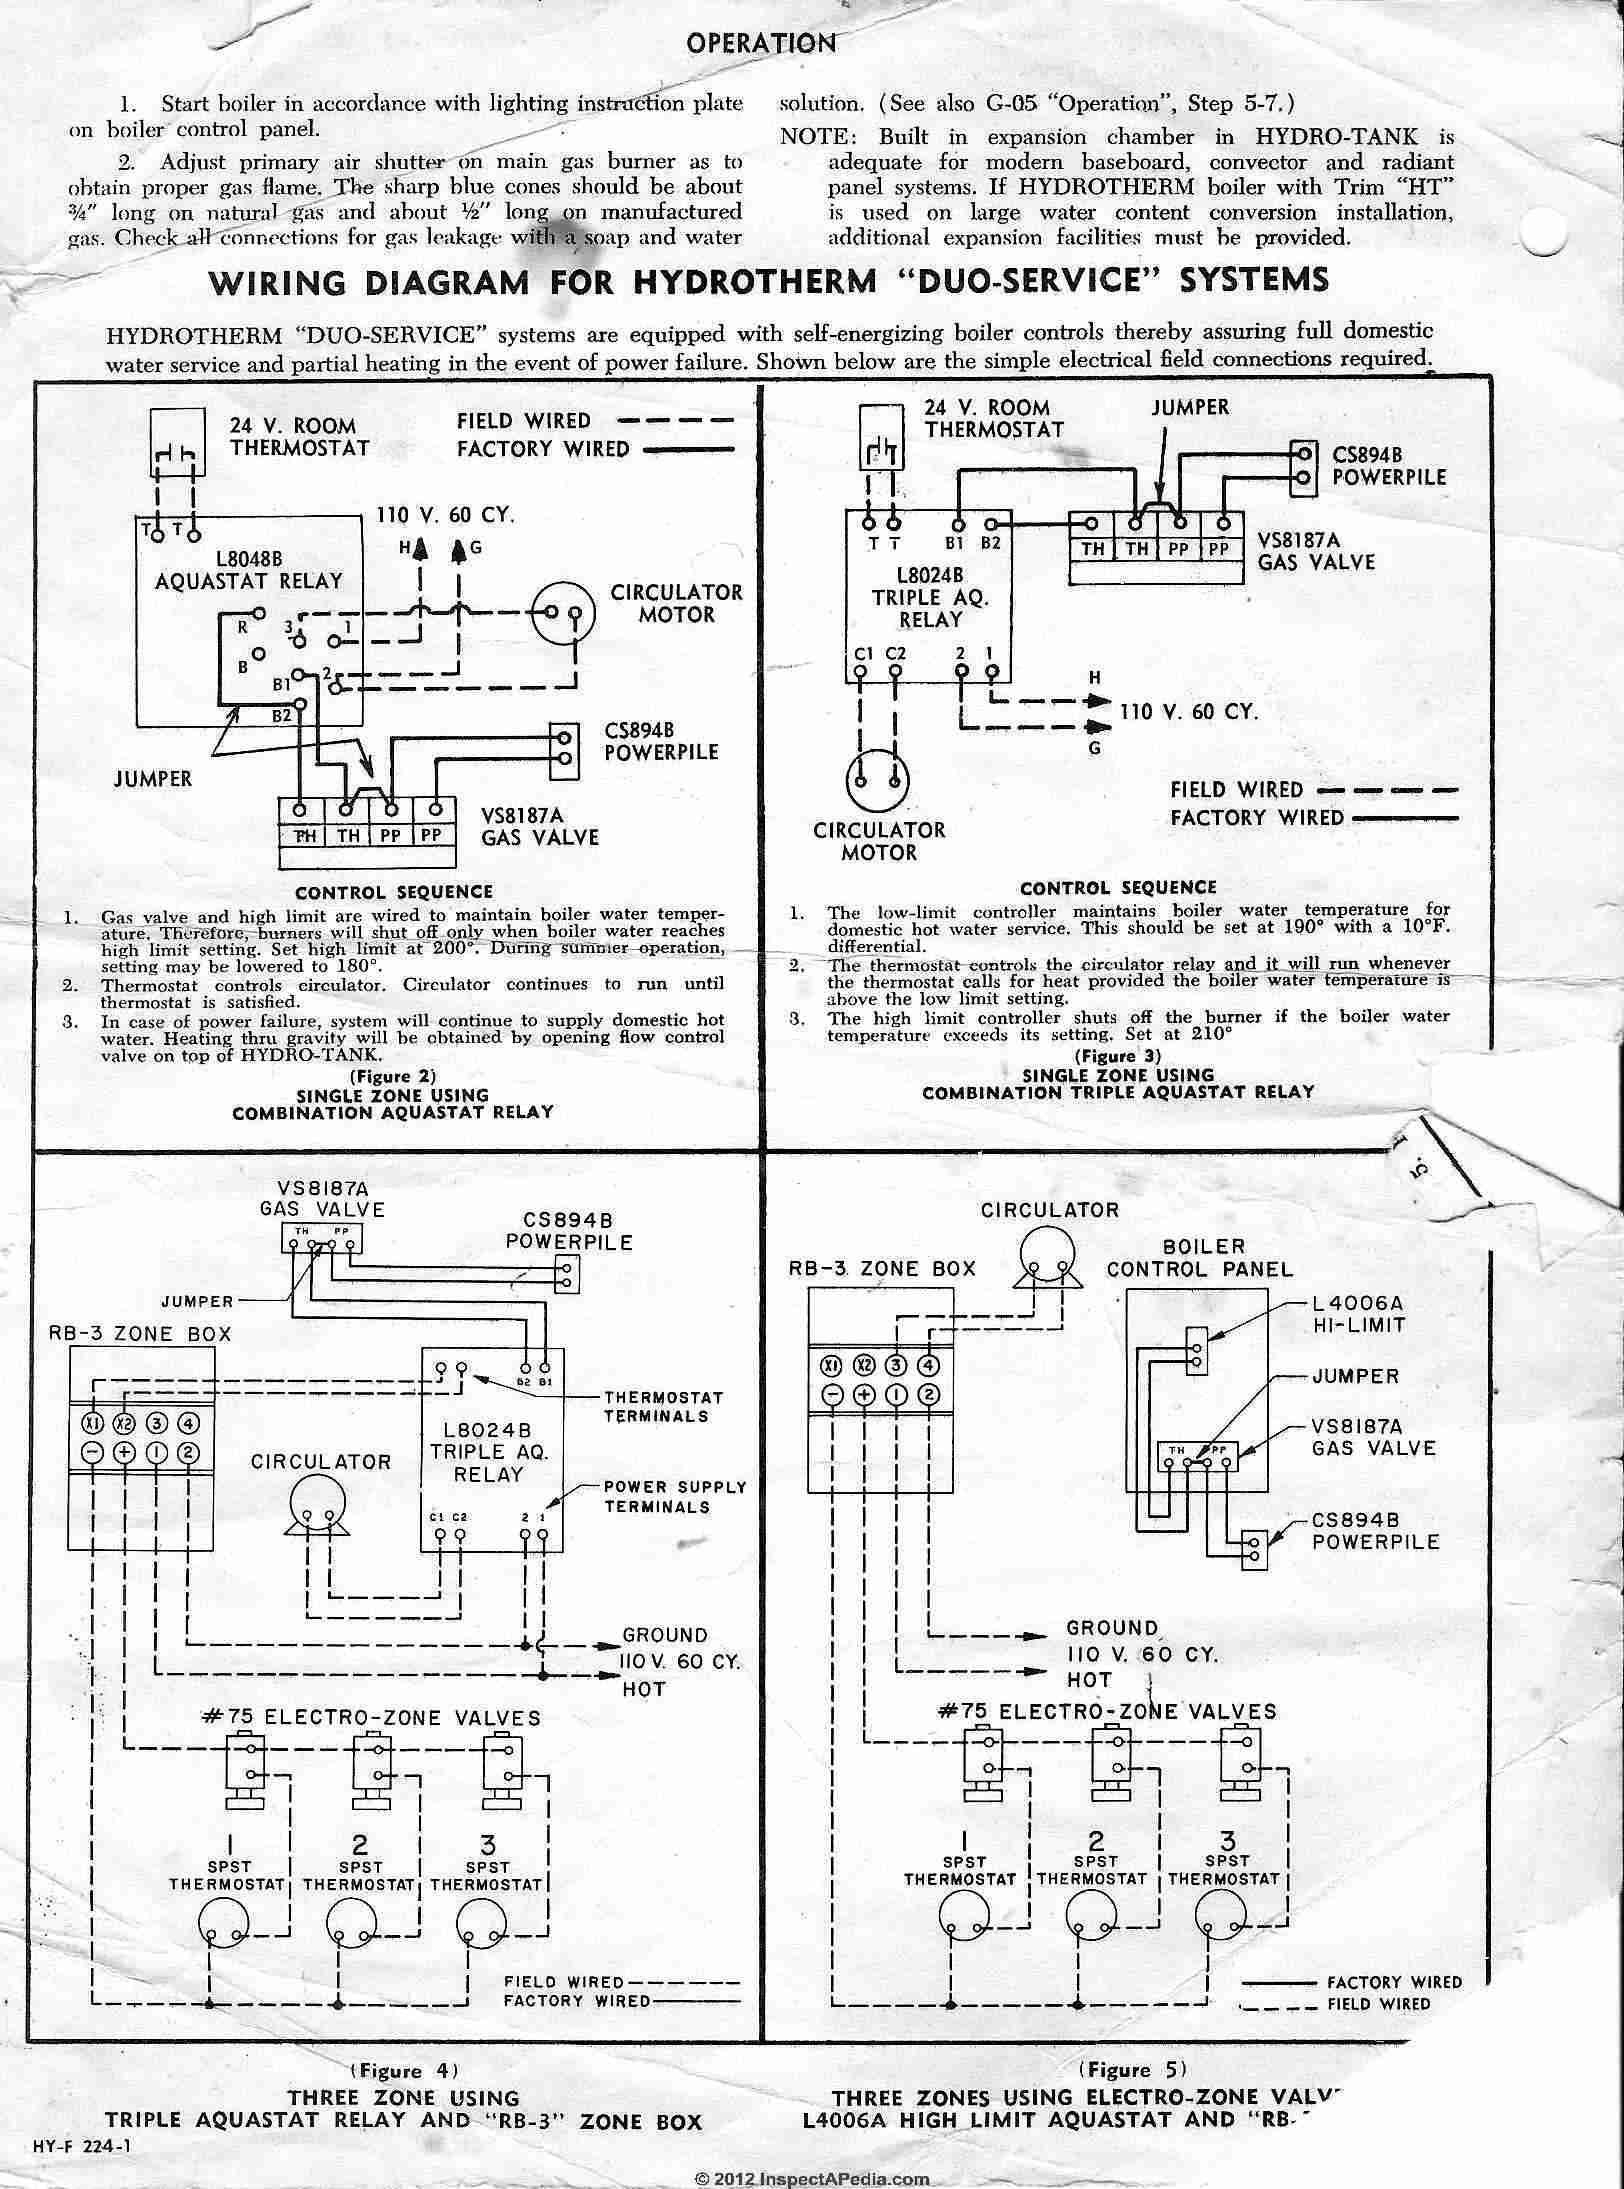 honeywell fan limit switch wiring diagram Collection-16 Channel Remote Control Likewise Honeywell Fan Limit Switch Wiring Furnace Fan Relay Wiring Diagram 5-a